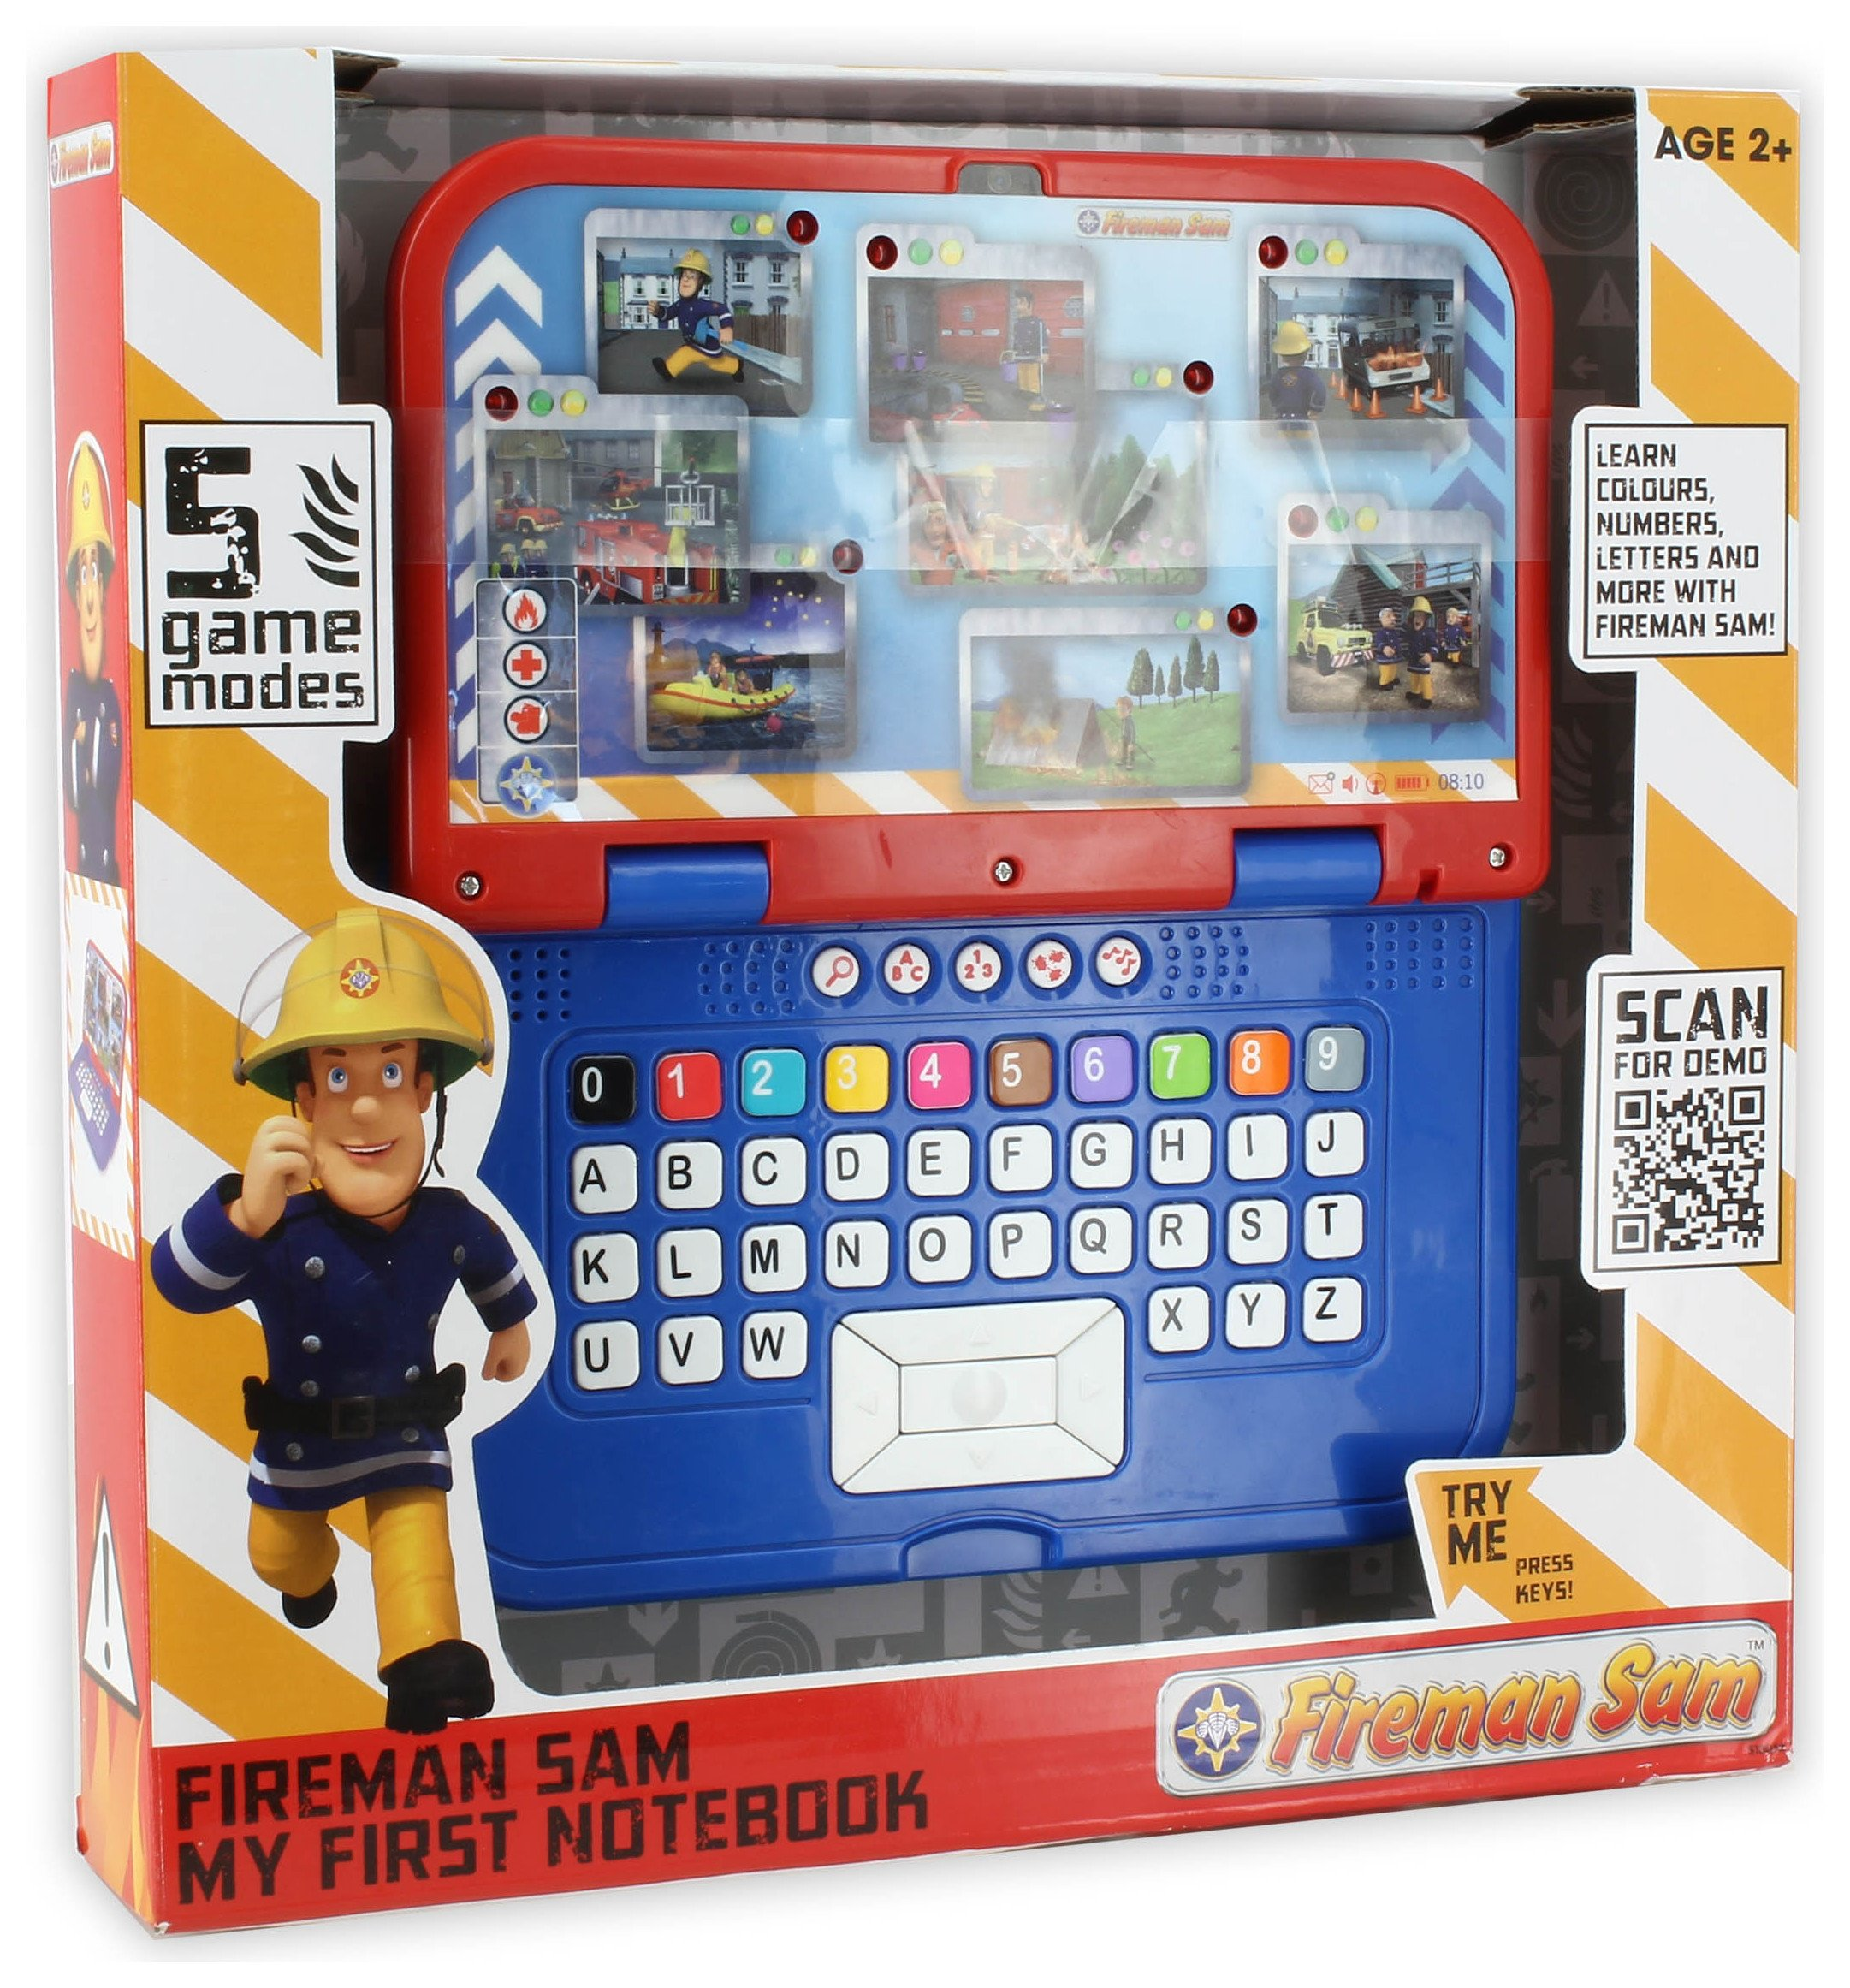 Image of Fireman Sam My First Notebook.